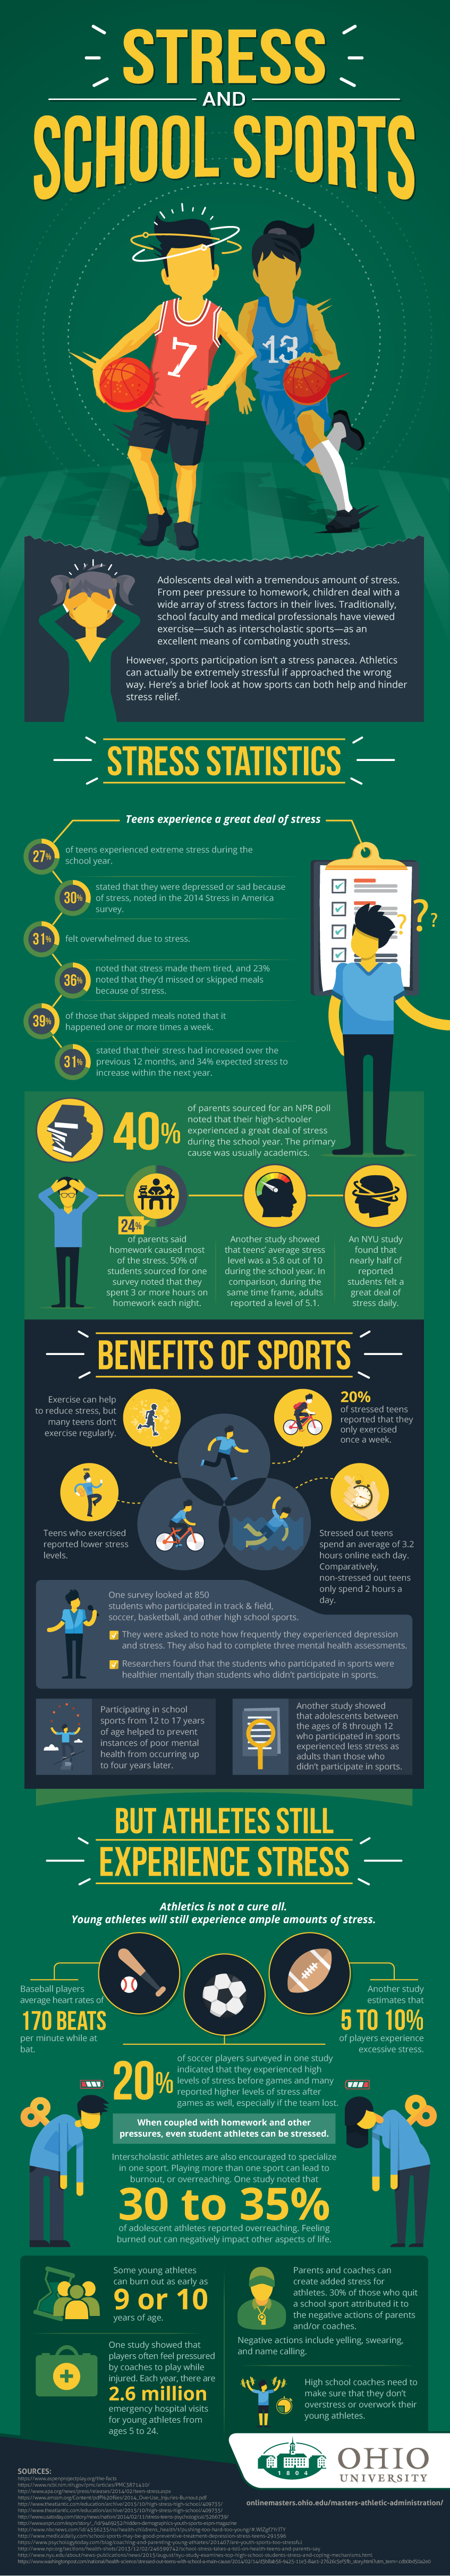 Stress-and-School-sports